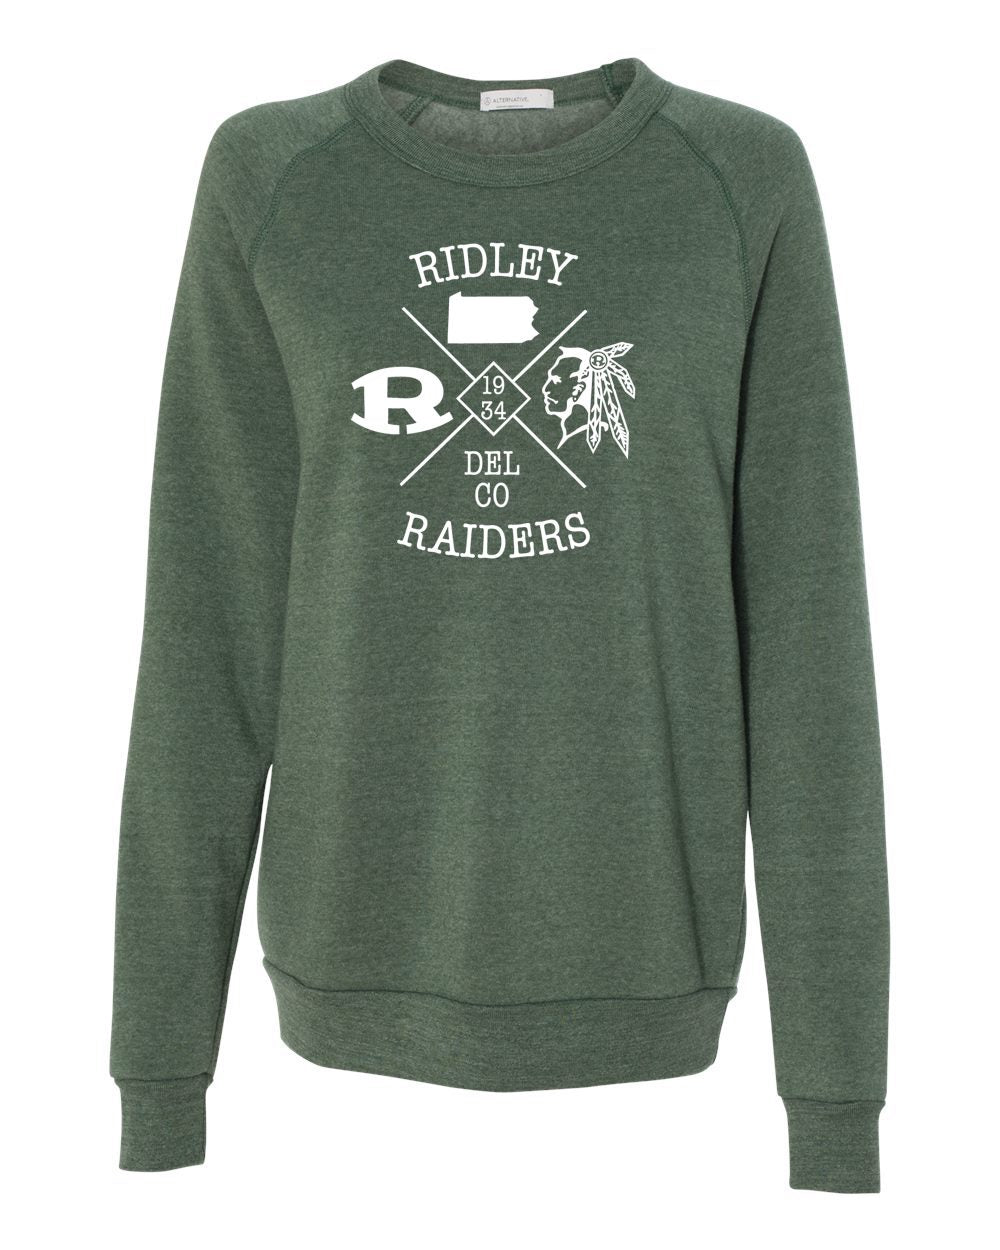 Adult Ridley Delco Raiders Crewneck